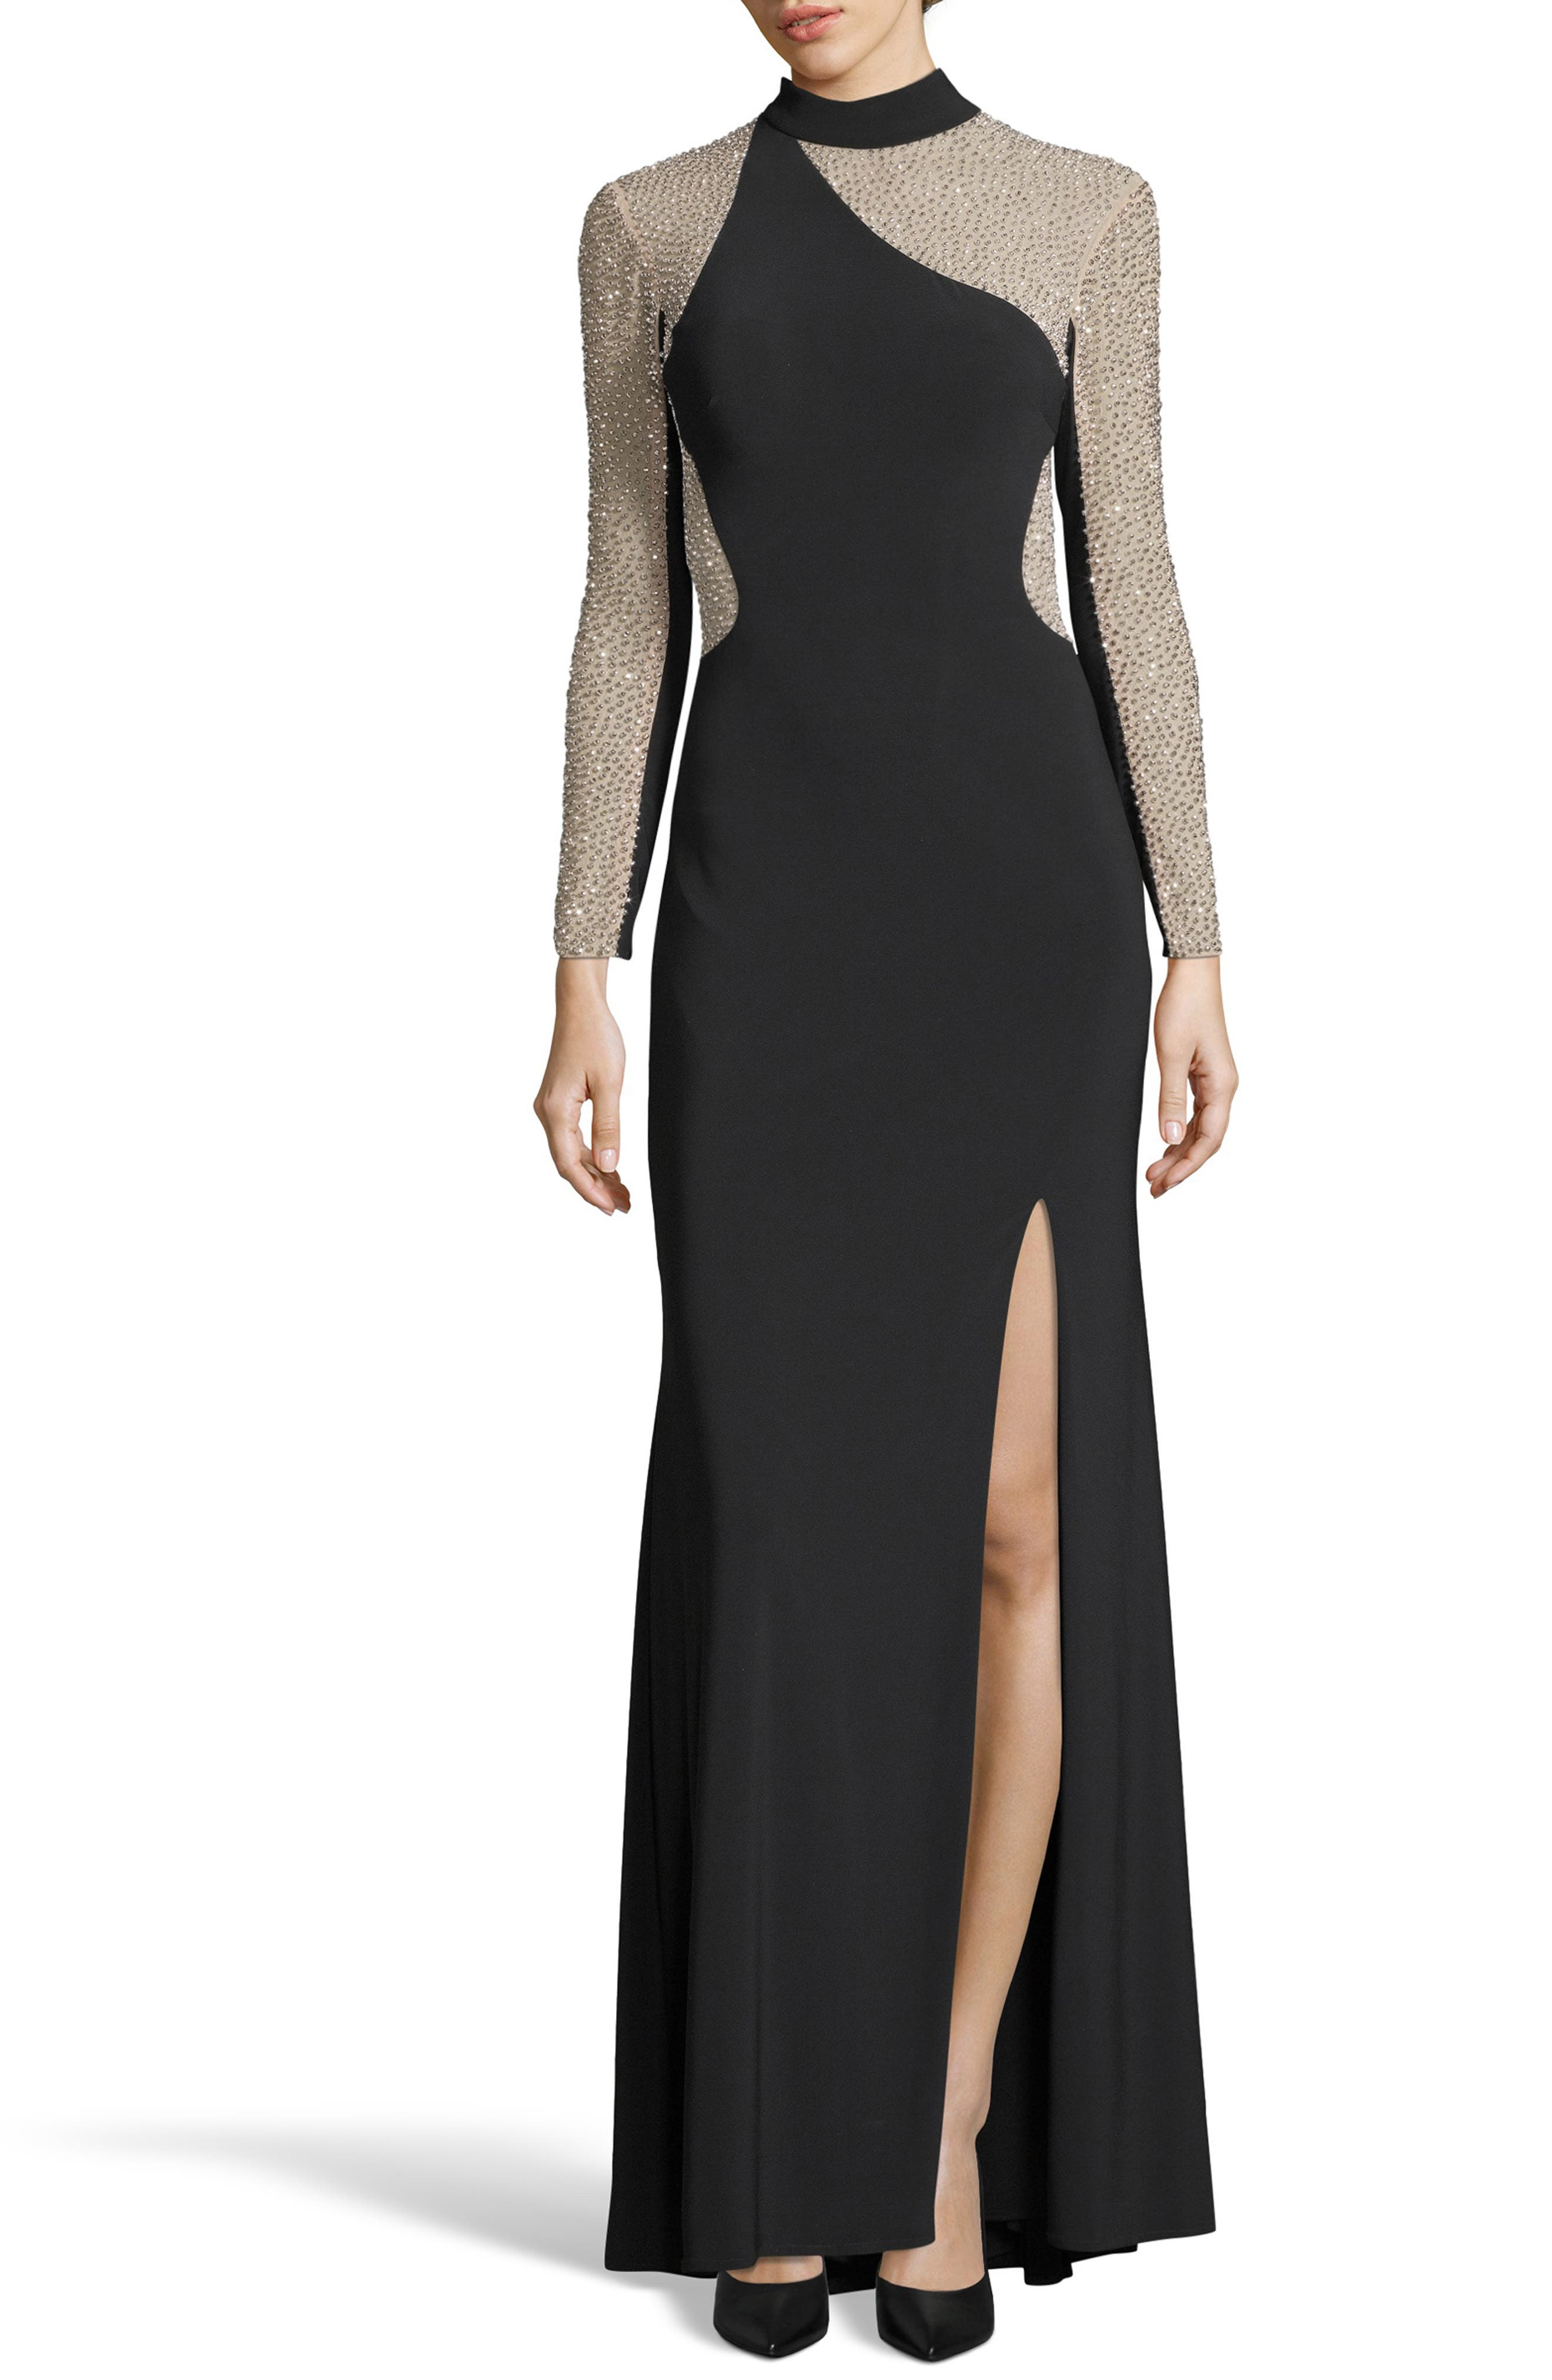 Ity Bead Embellished Jersey Gown,                             Main thumbnail 1, color,                             BLACK/ NUDE/ SILVER